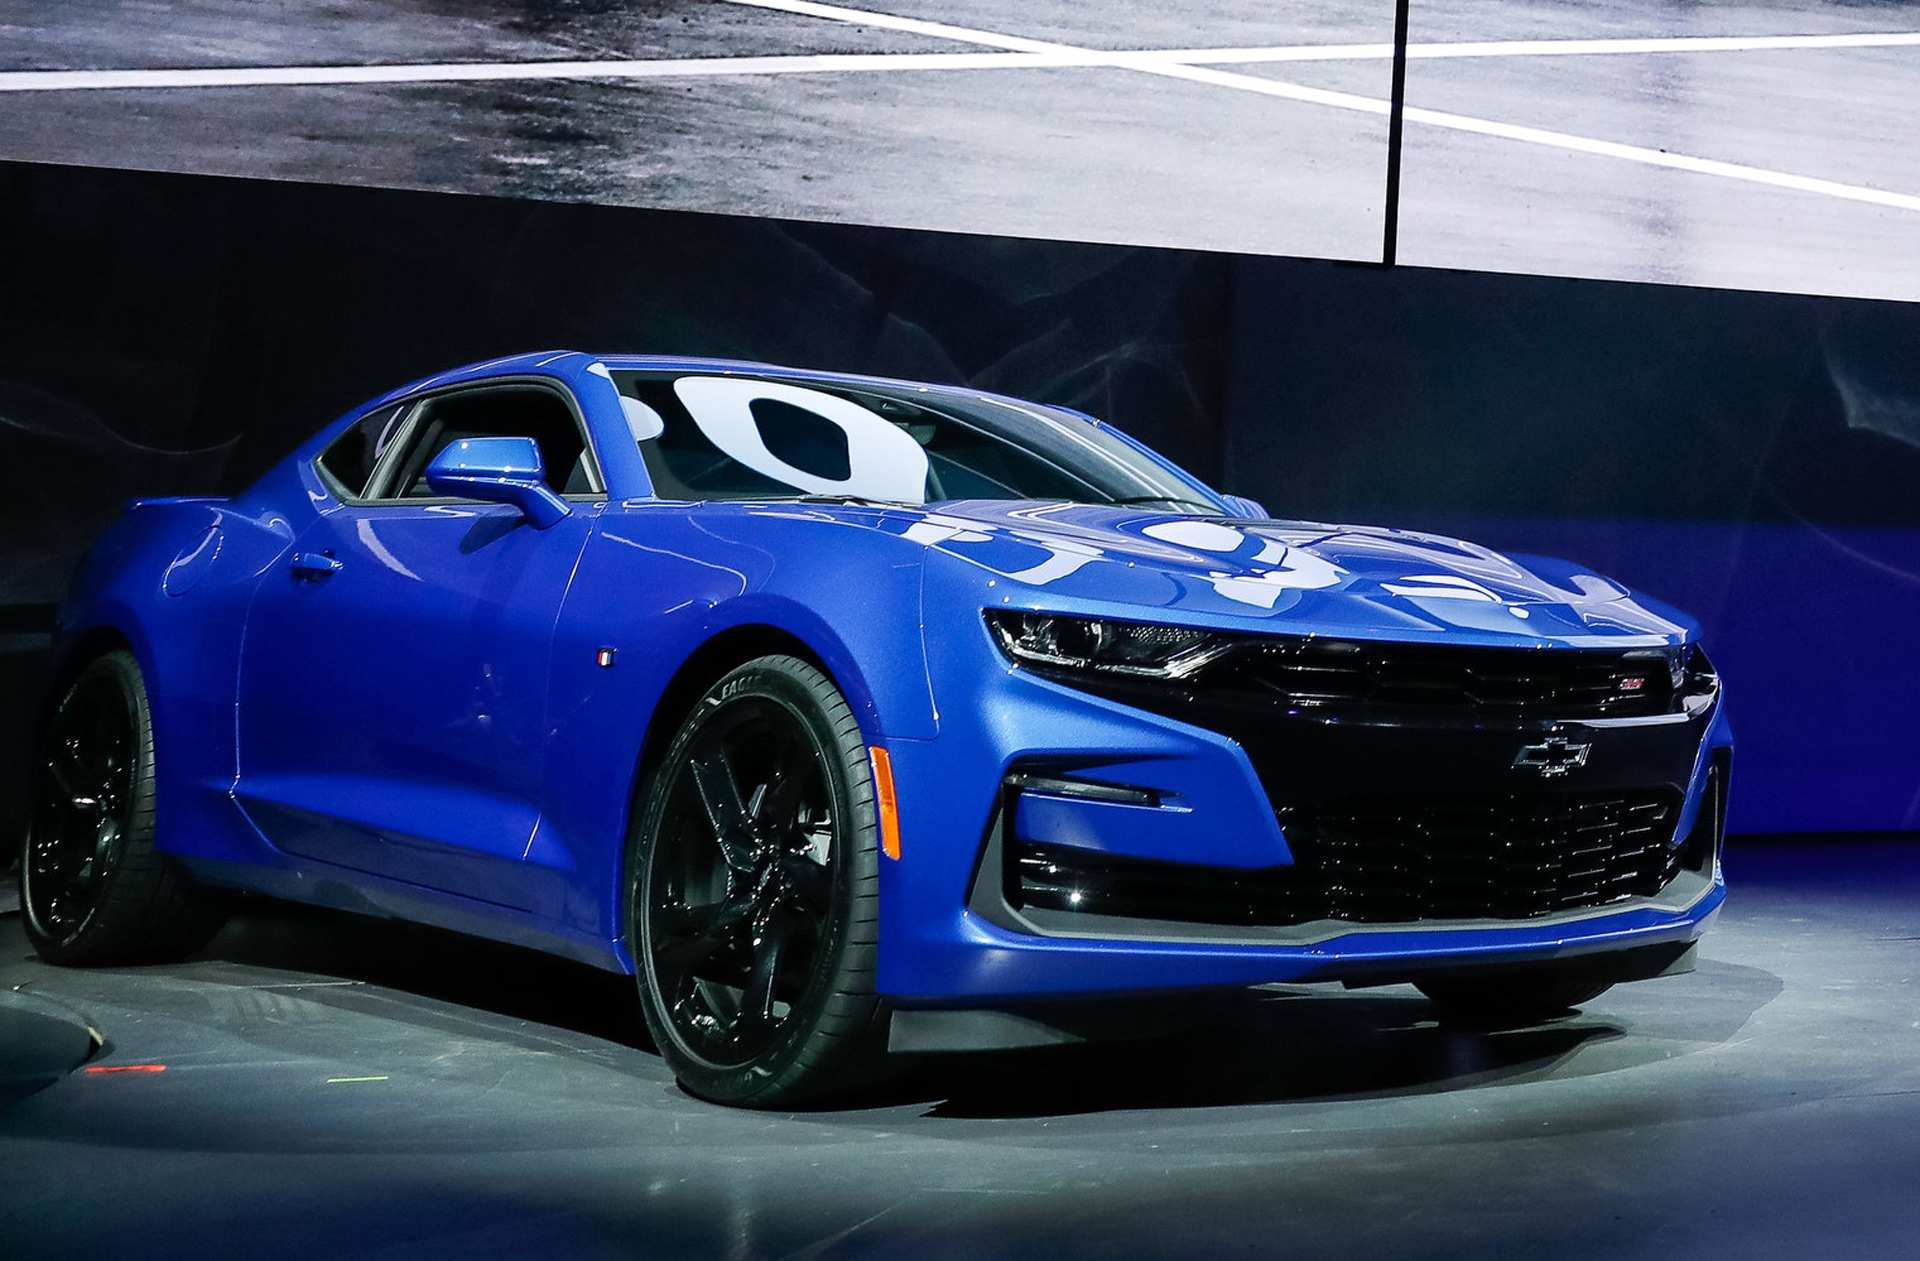 43 Best Review 2019 Chevy Camaro Competition Arrival Spy Shoot for 2019 Chevy Camaro Competition Arrival